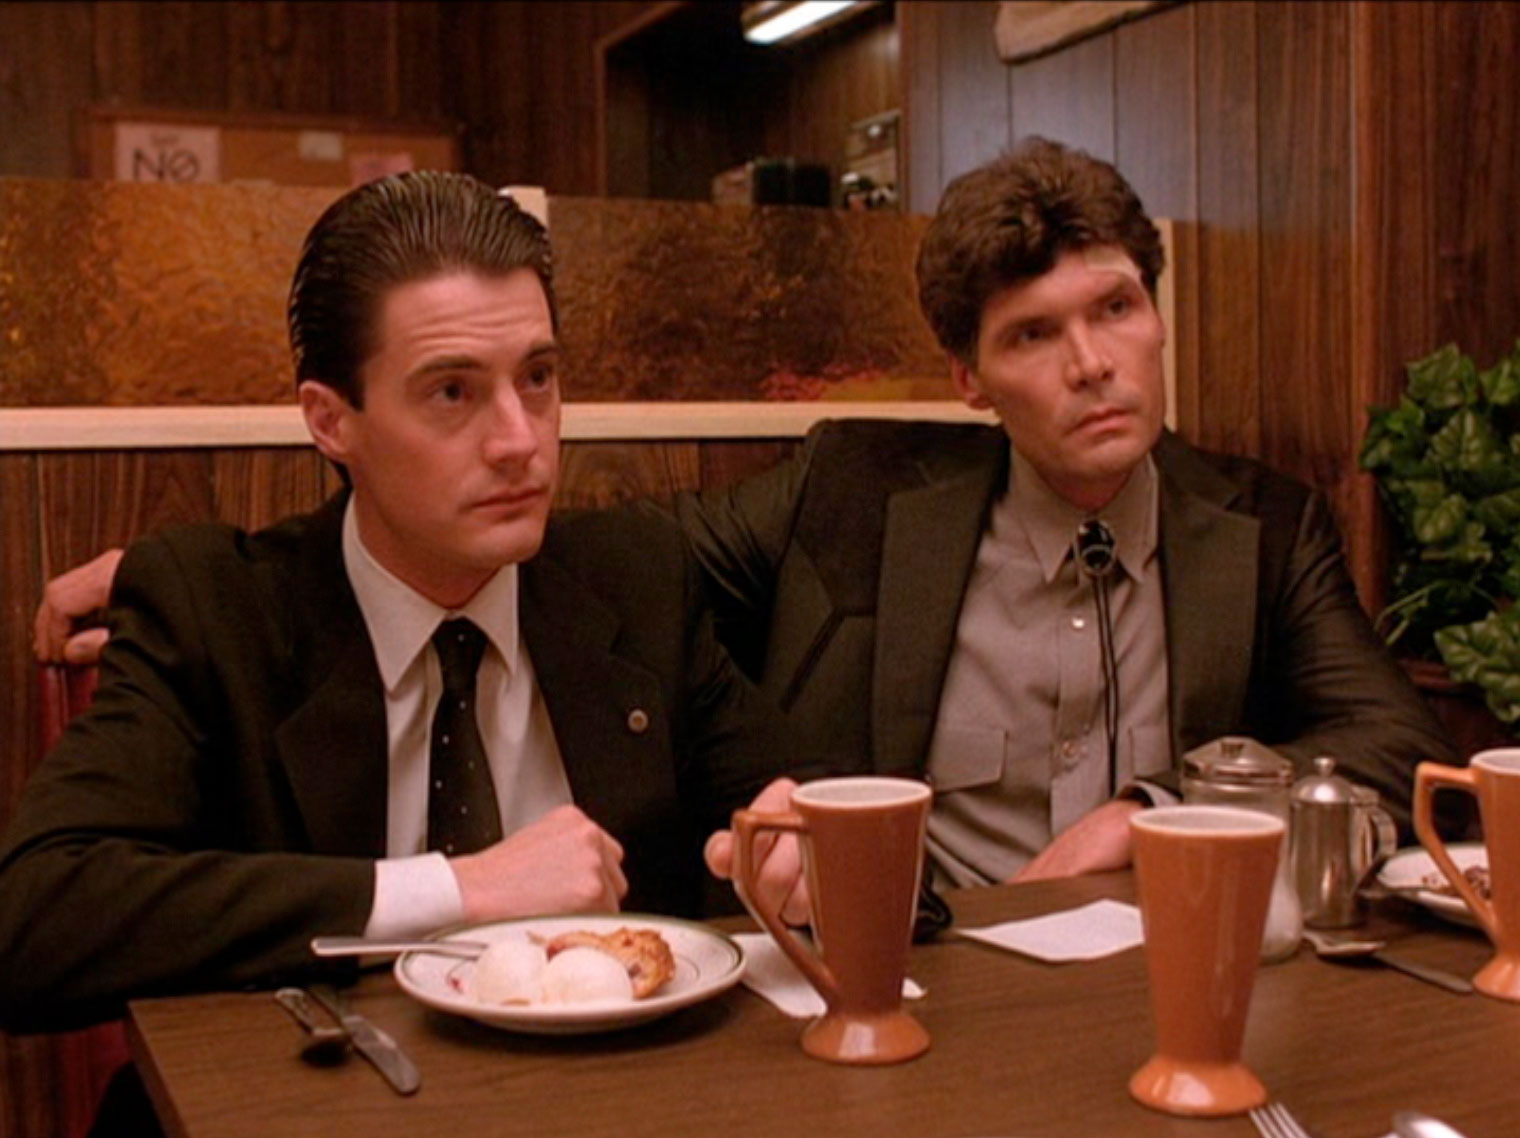 twin-peaks-the-double-r-diner-1